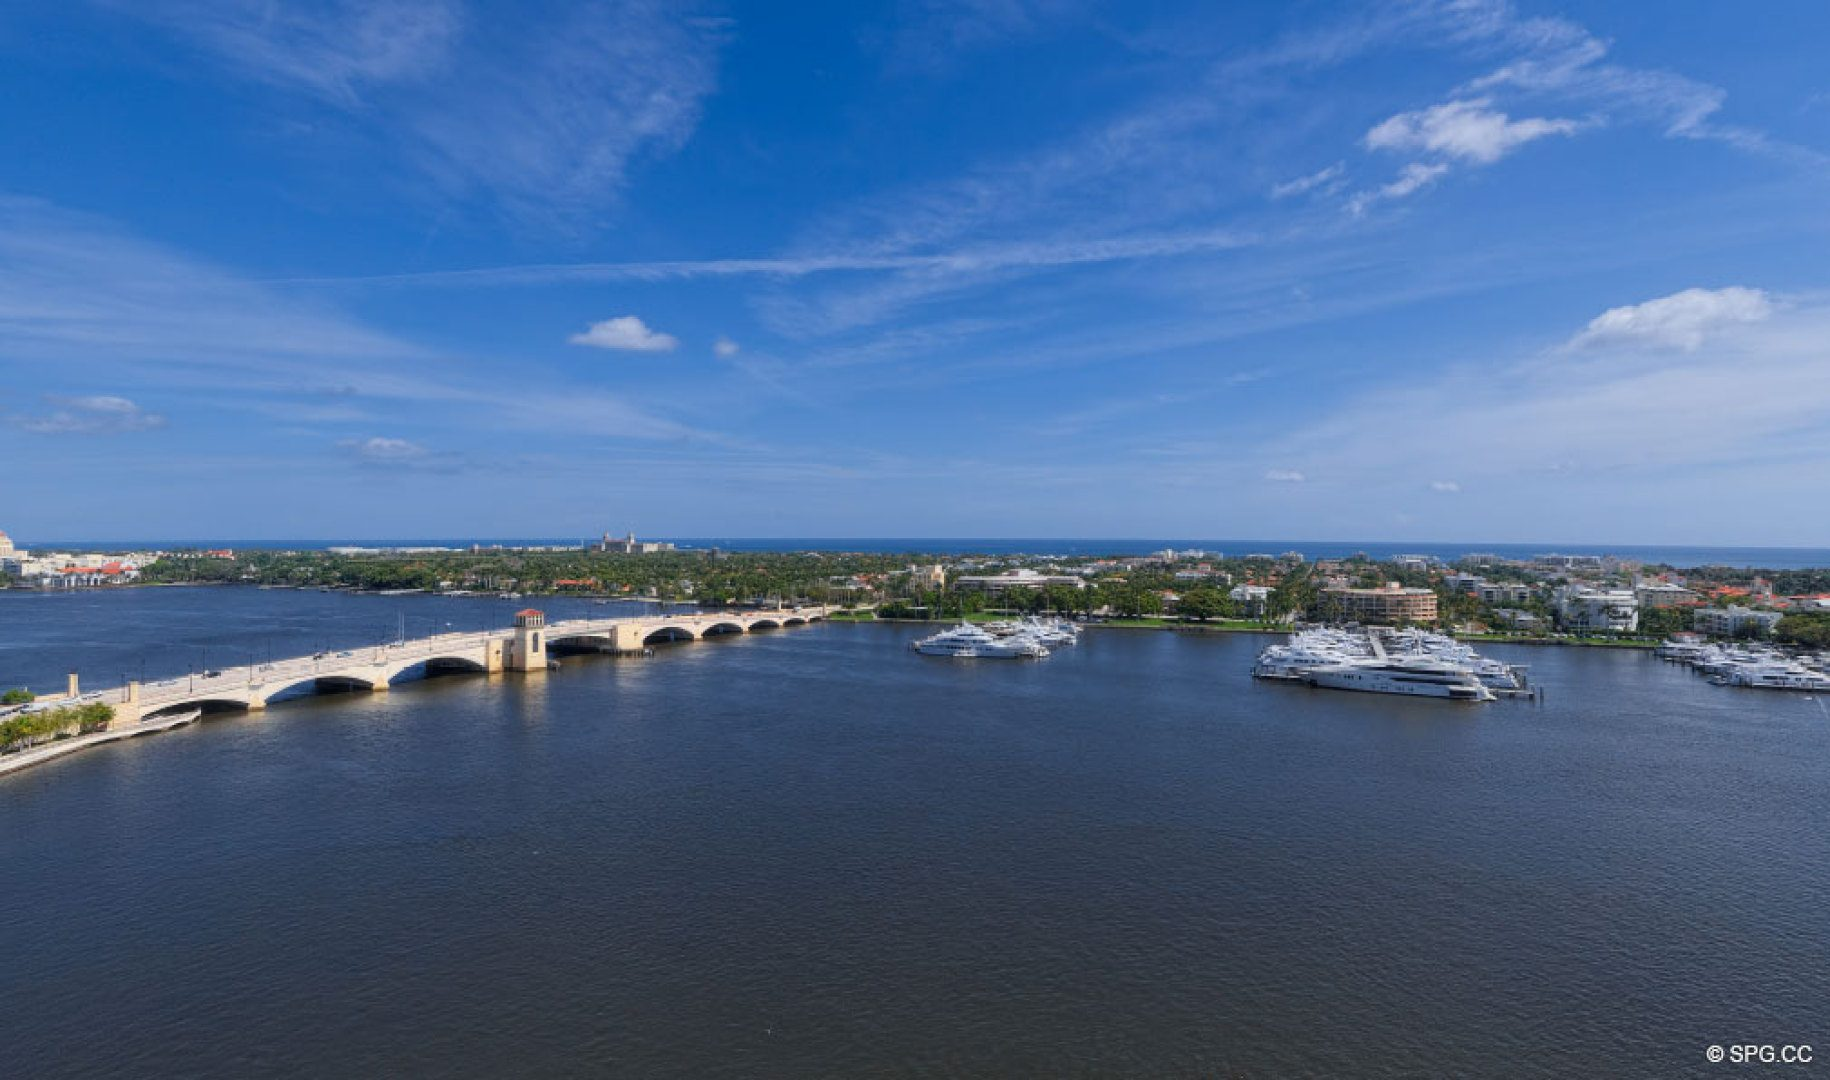 Eastern Views from The Bristol, Luxury Waterfront Condos in West Palm Beach, Florida 33401